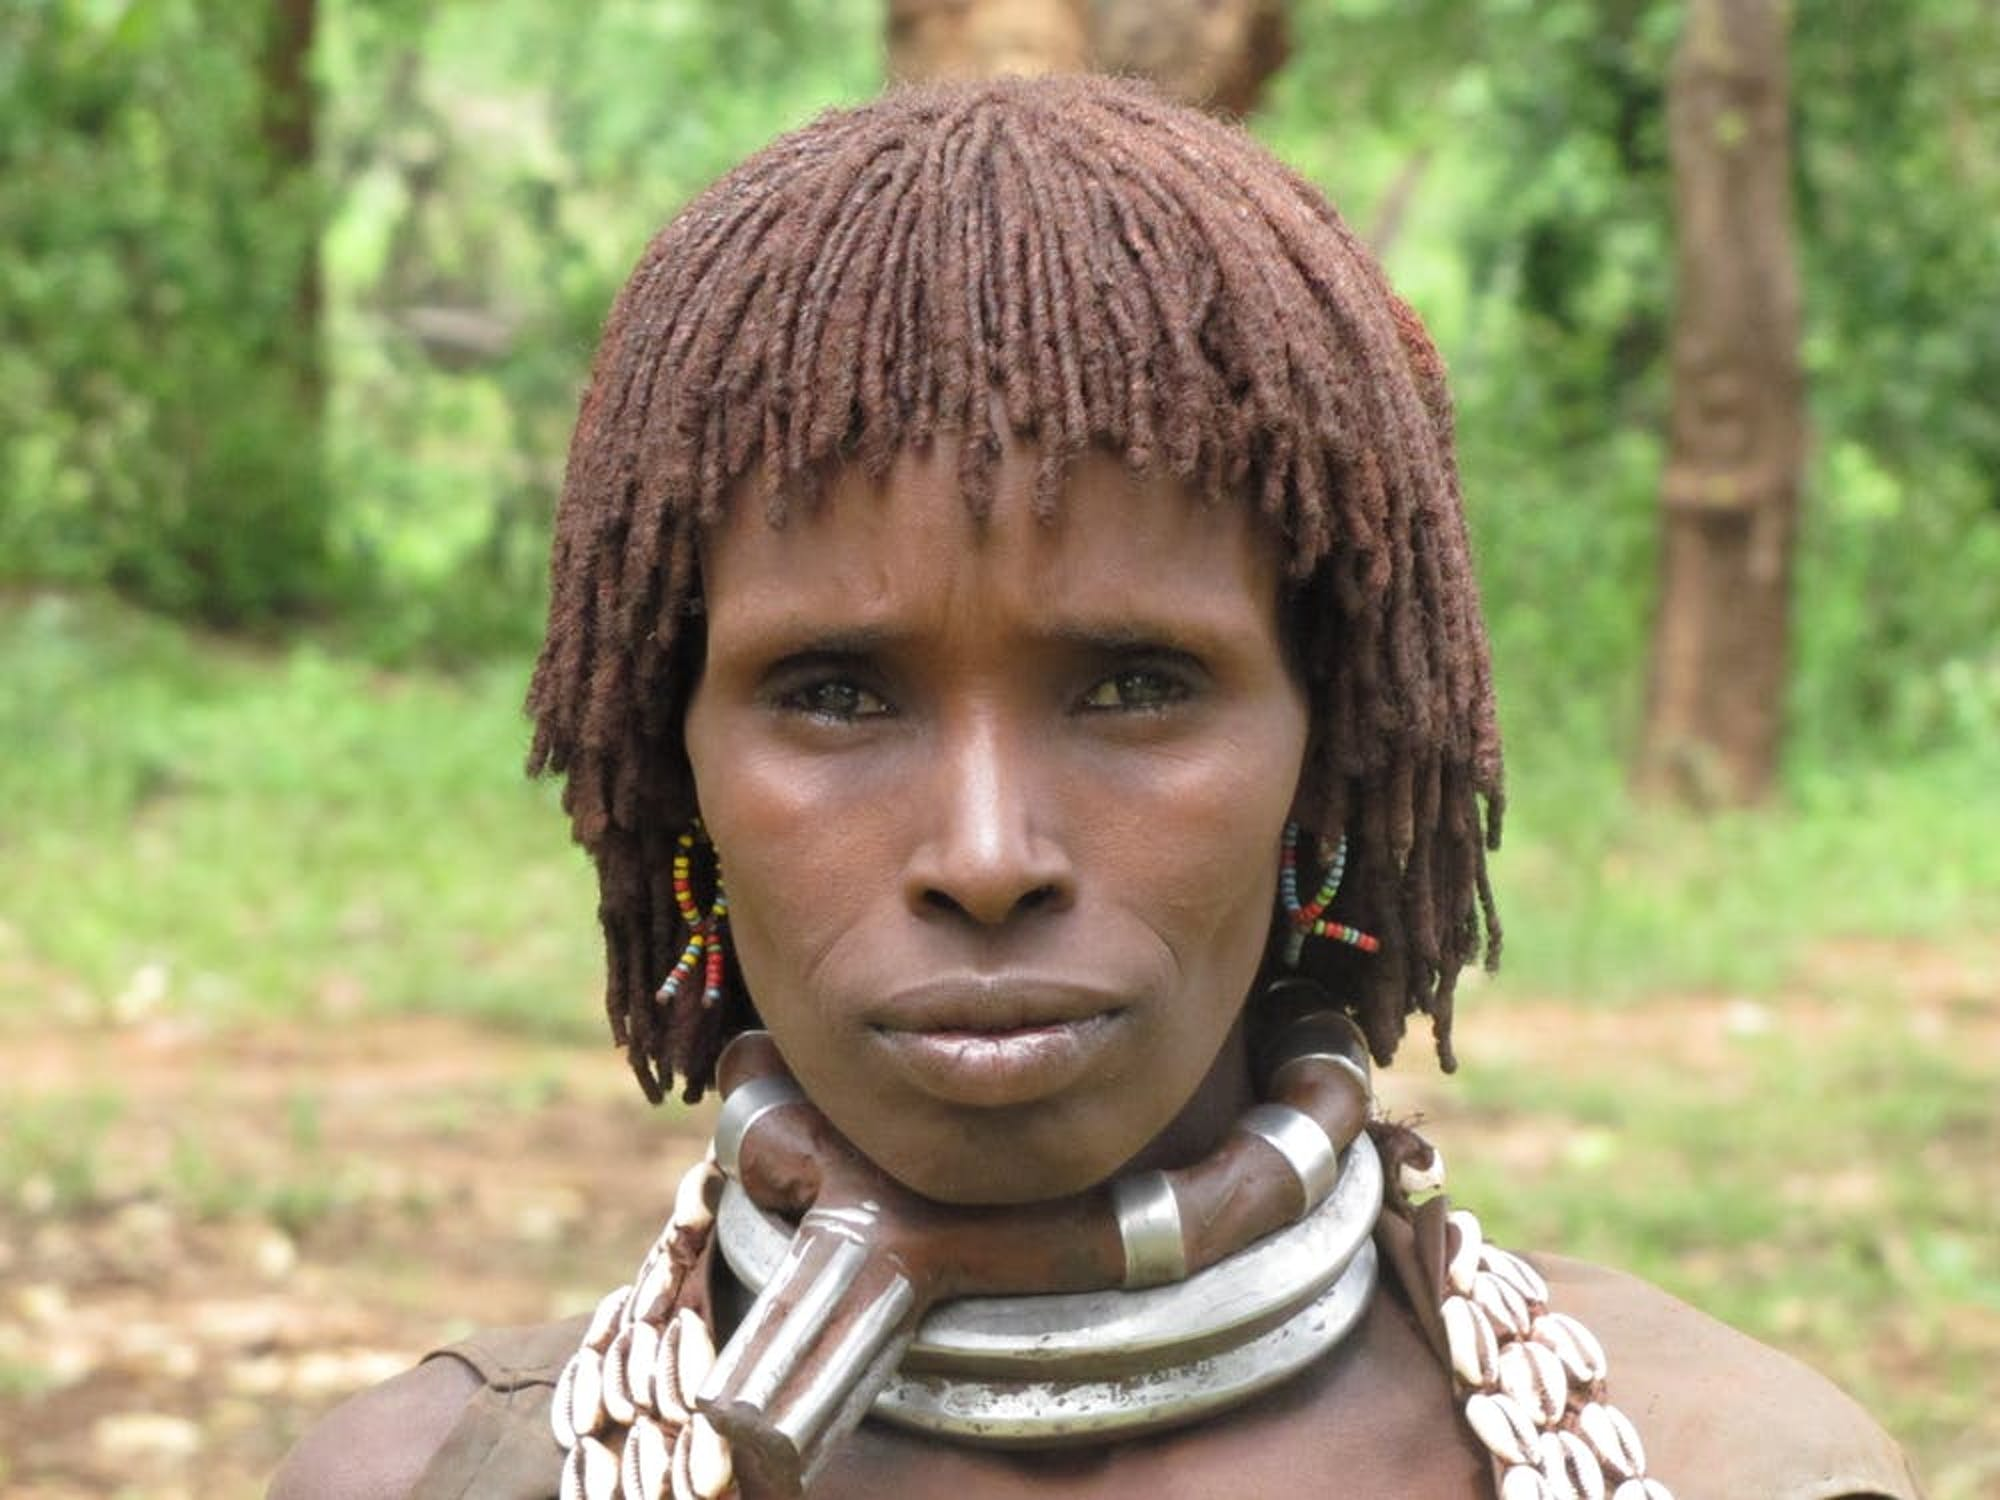 A Hamer individual from Ethiopia who took part in the study. Many alleles associated with light skin originated in Africa, not in Europe.